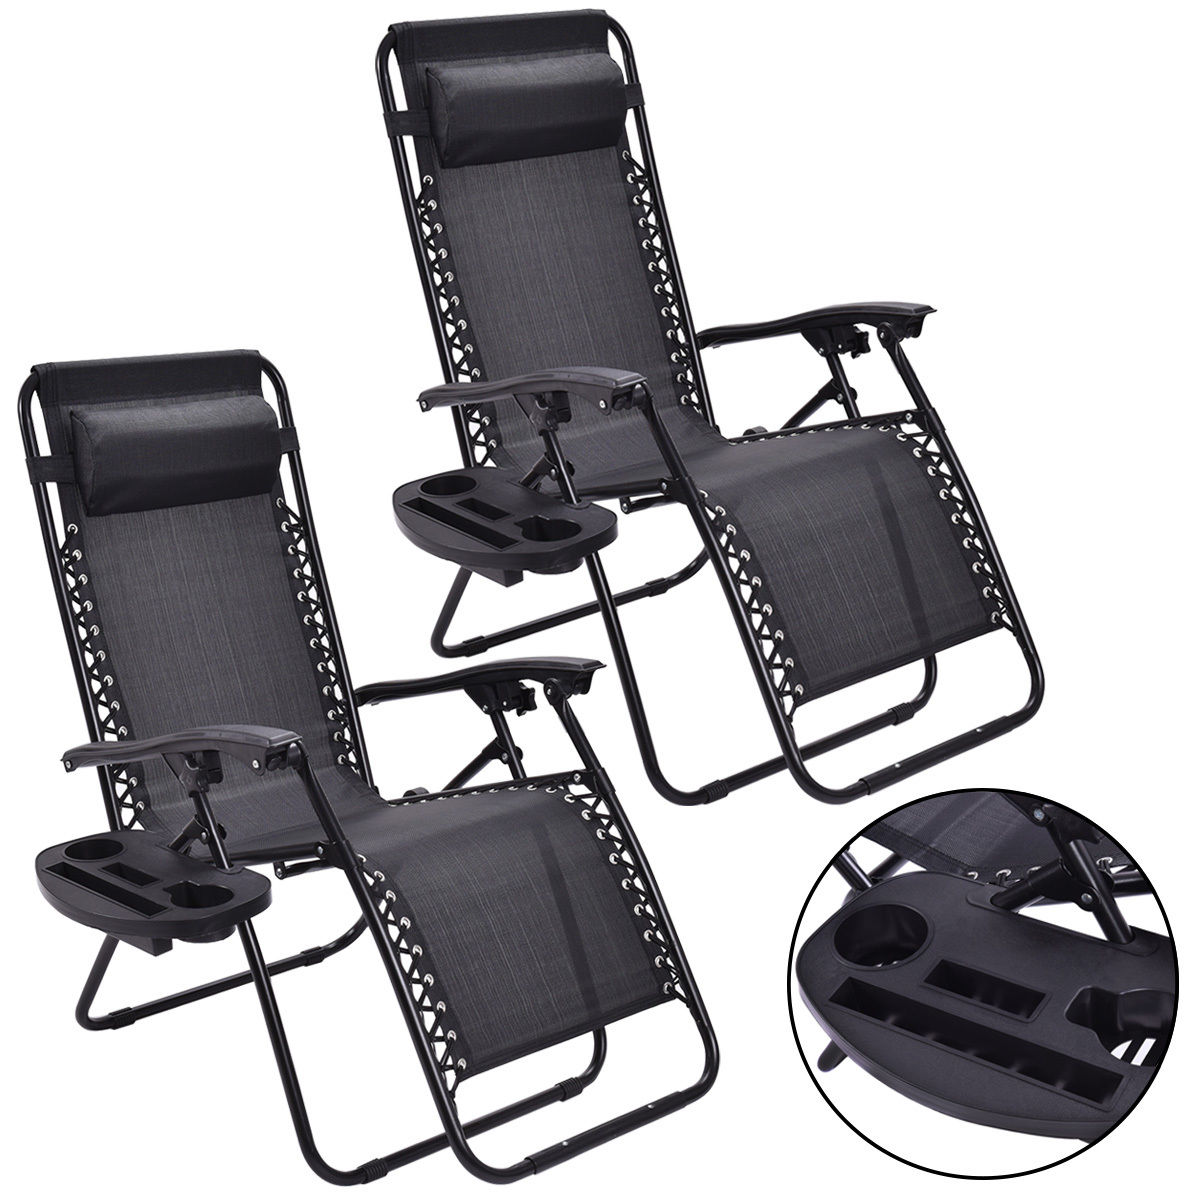 Portable Recliner Chair Giantex 2pc Zero Gravity Chairs Lounge Patio Folding